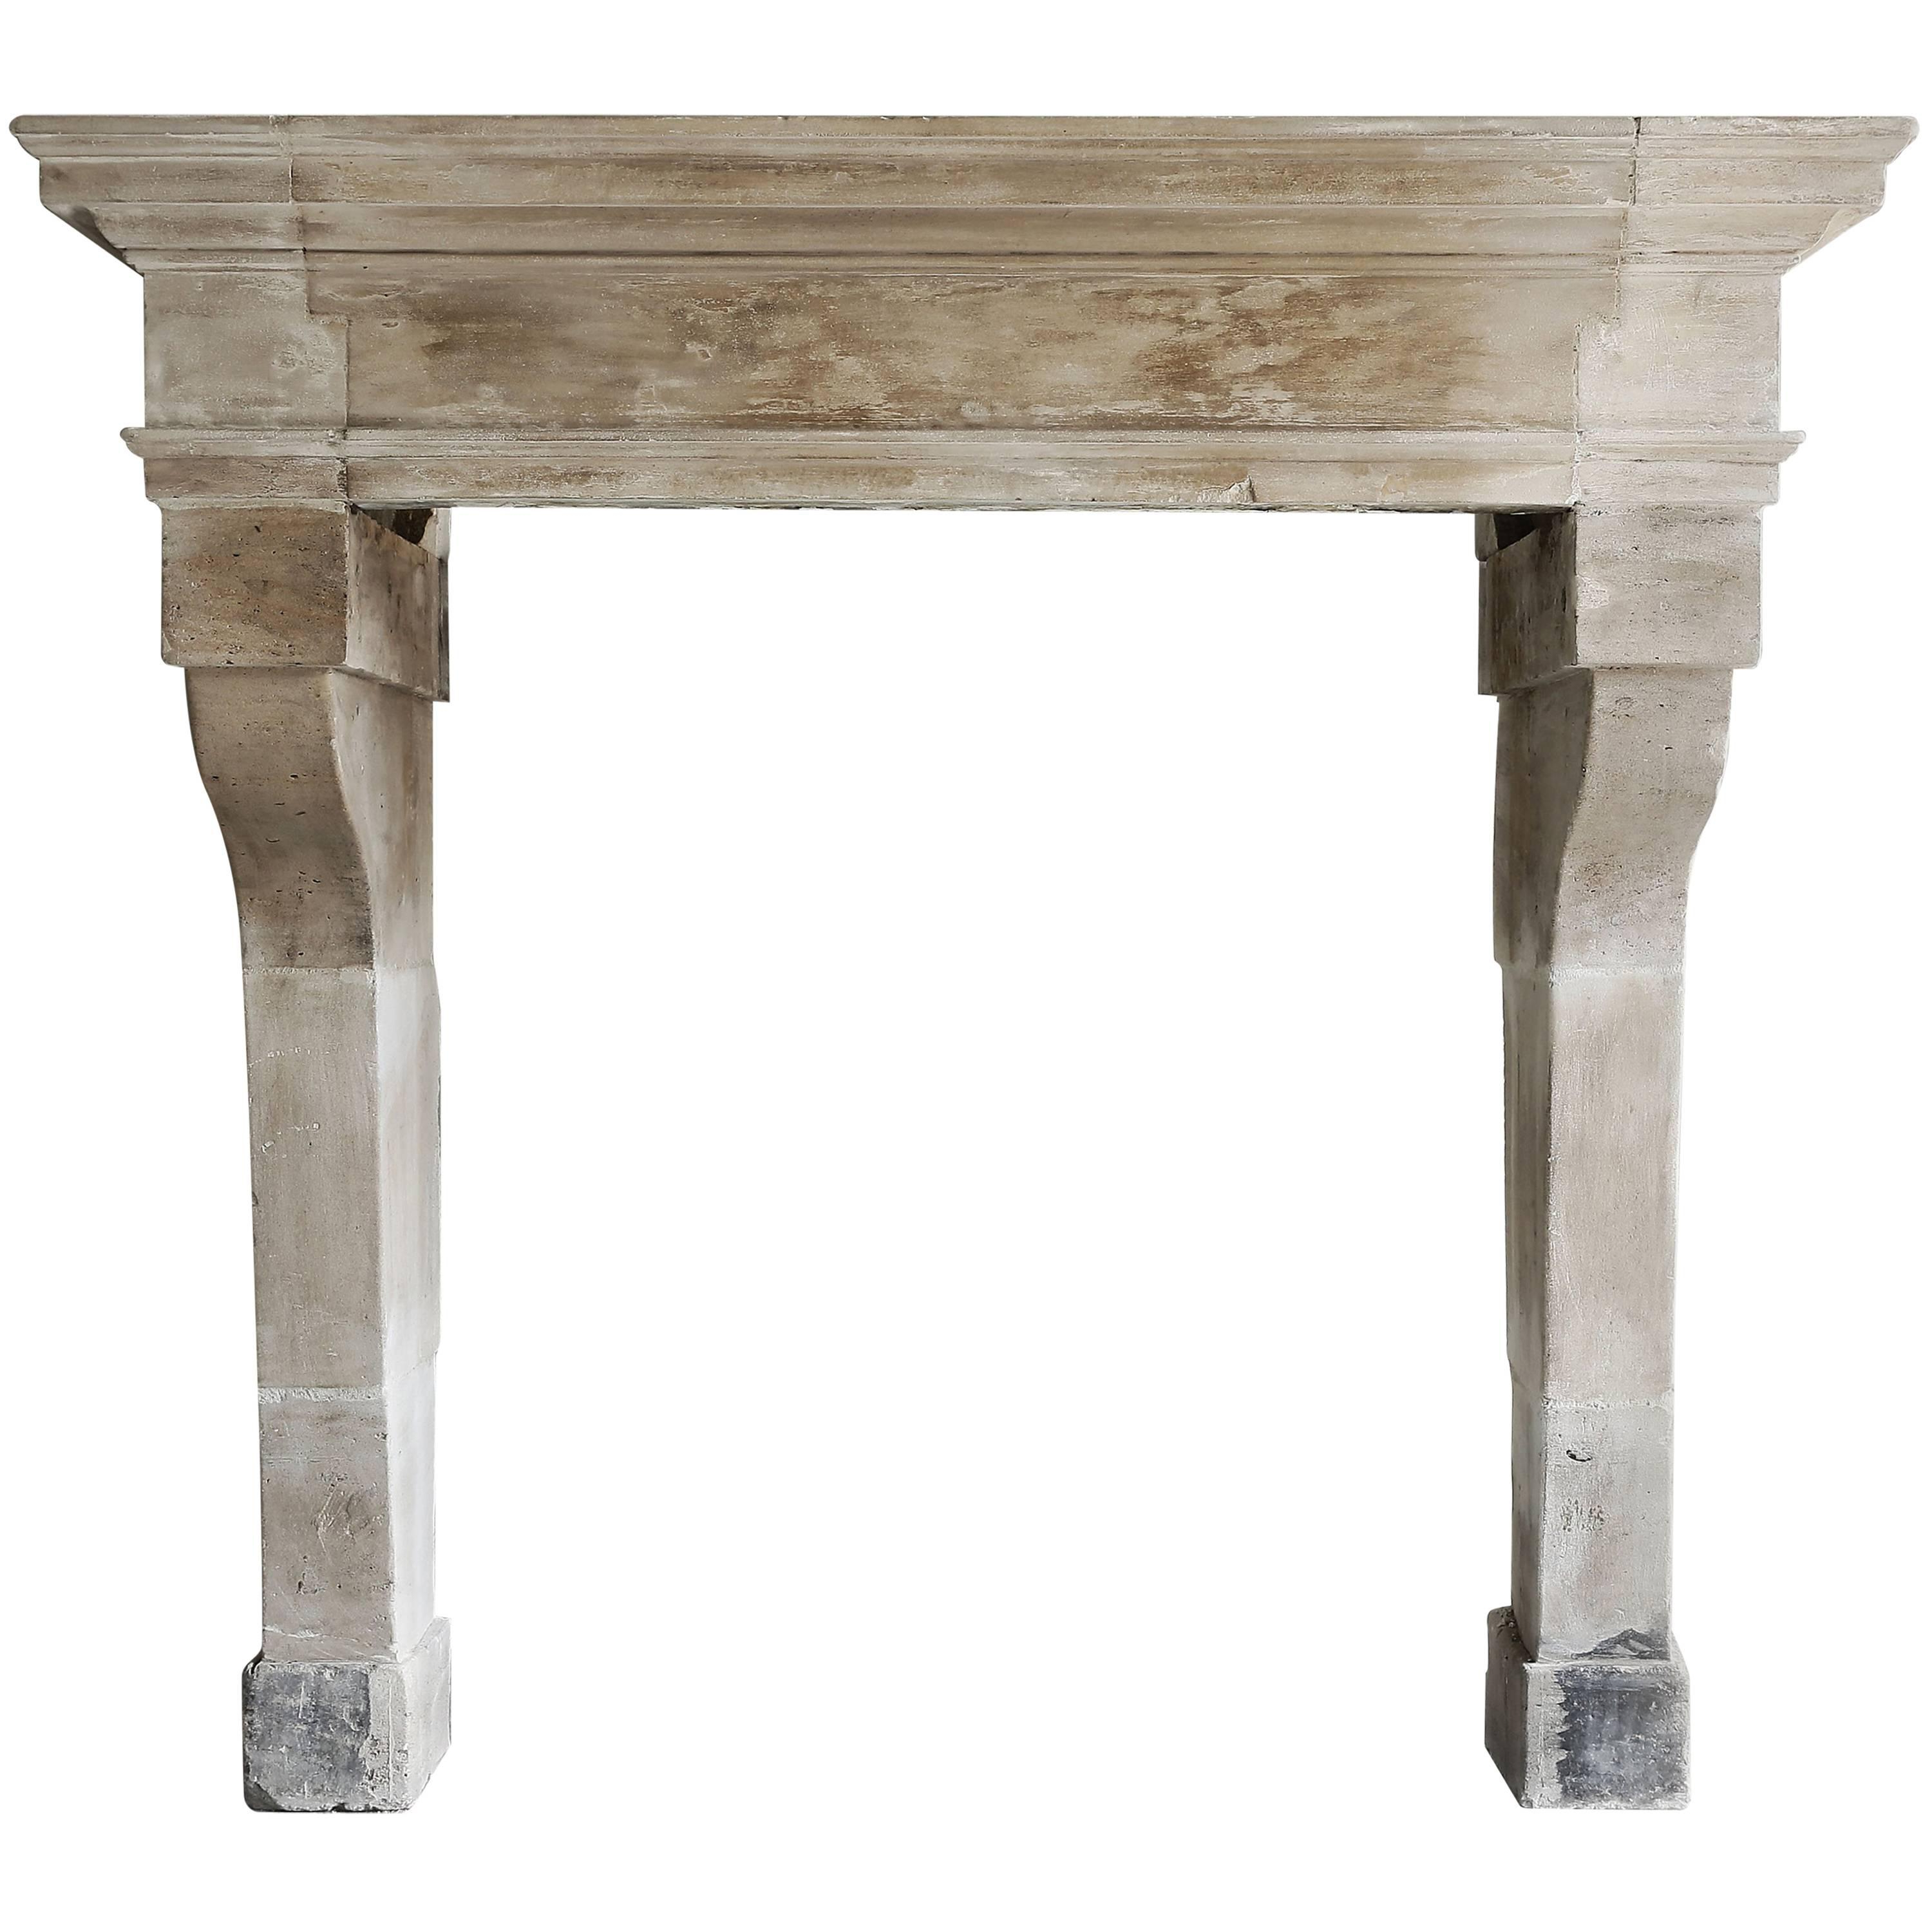 Antique French Fireplace From The Era Of Louis Xiii For Sale At 1stdibs Regarding Era Limestone Console Tables (View 19 of 20)